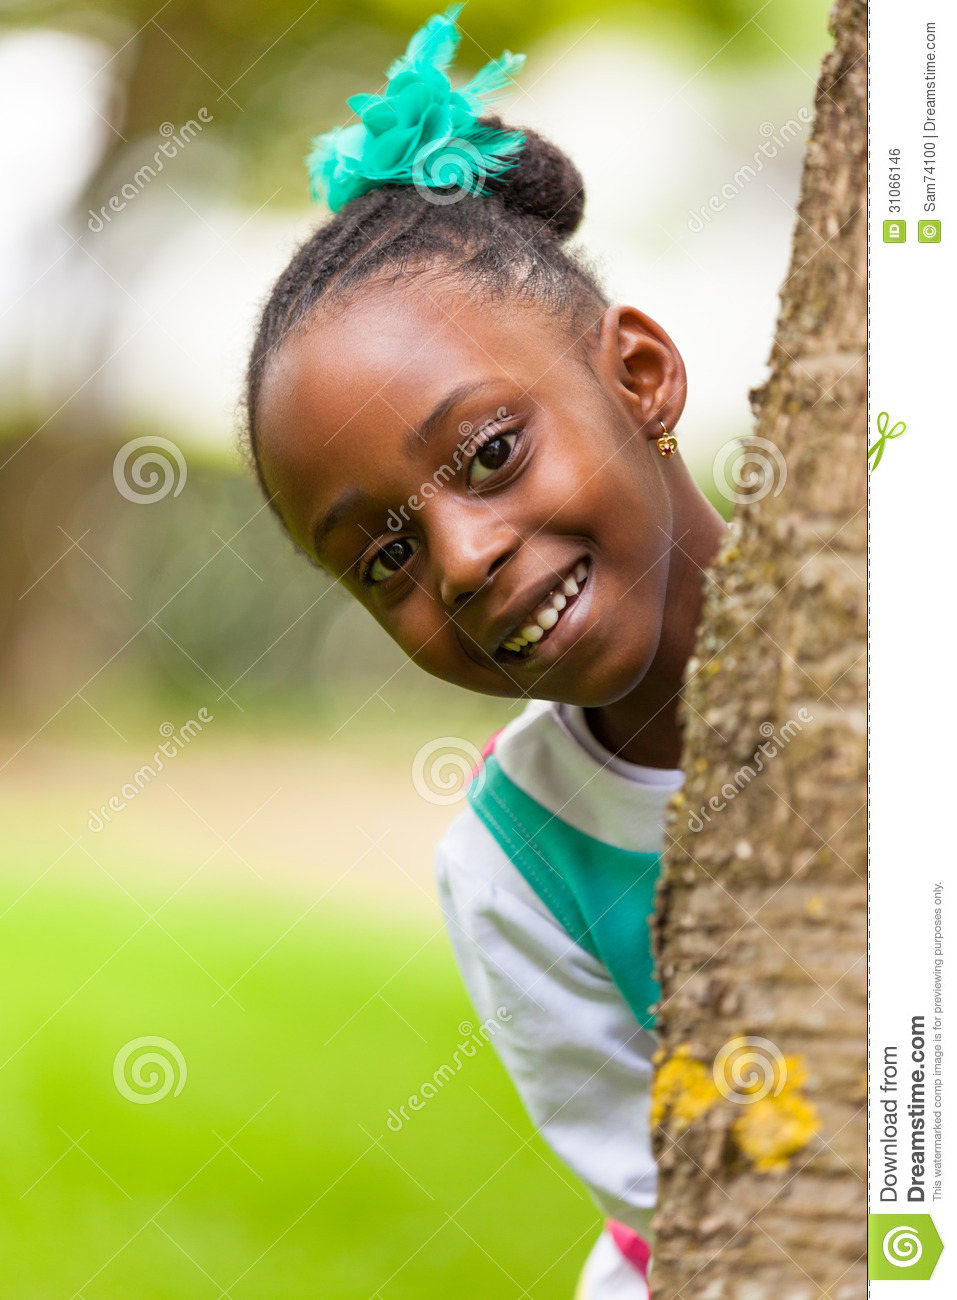 young cute african close portrait outdoor smiling royalty outside